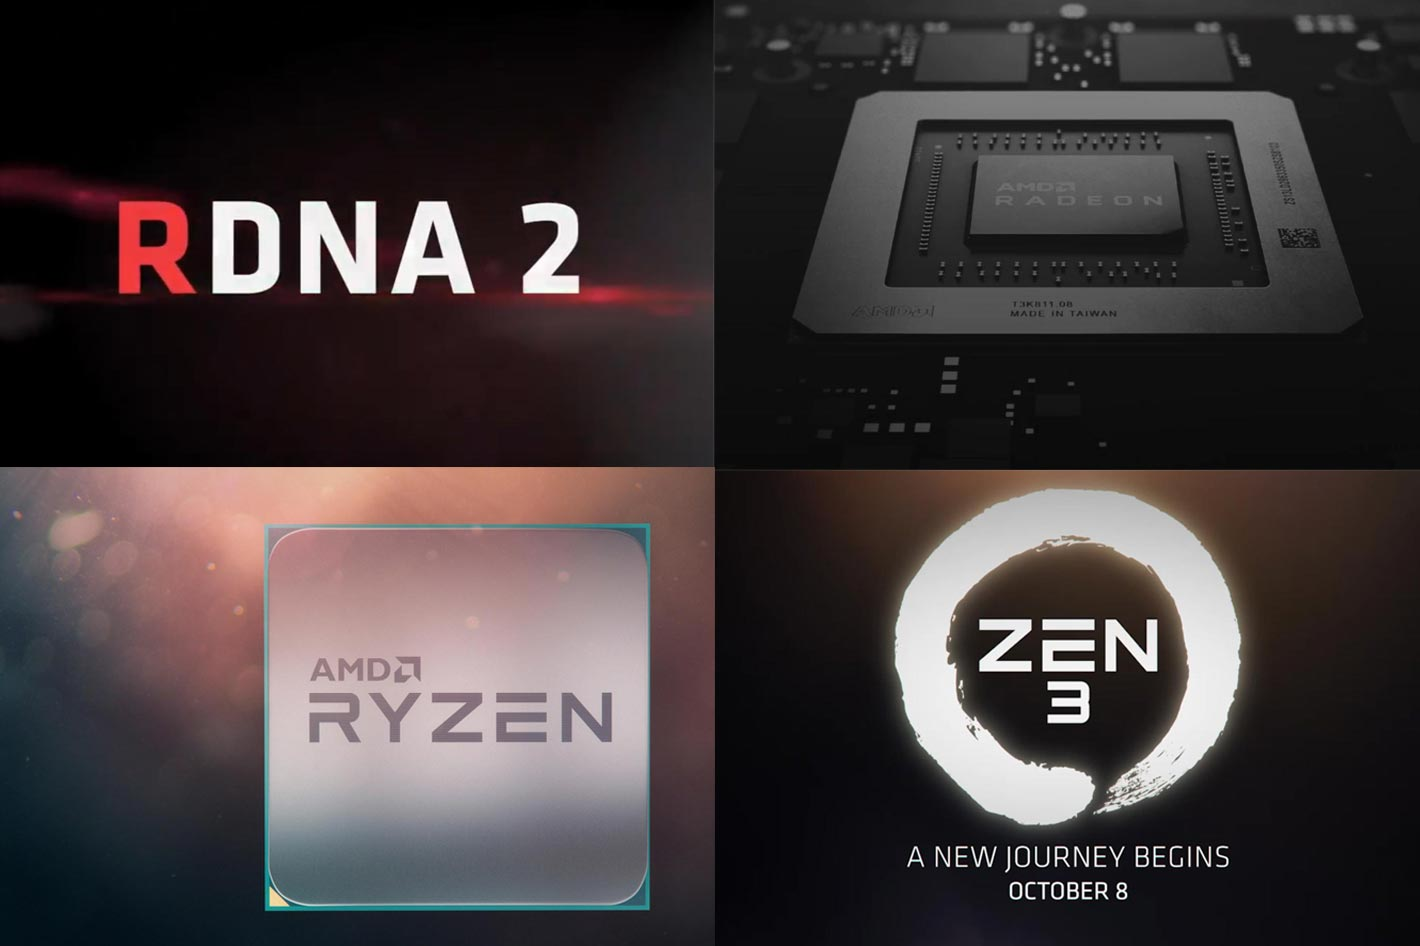 AMD: next generation CPU and graphics cards arrive in October